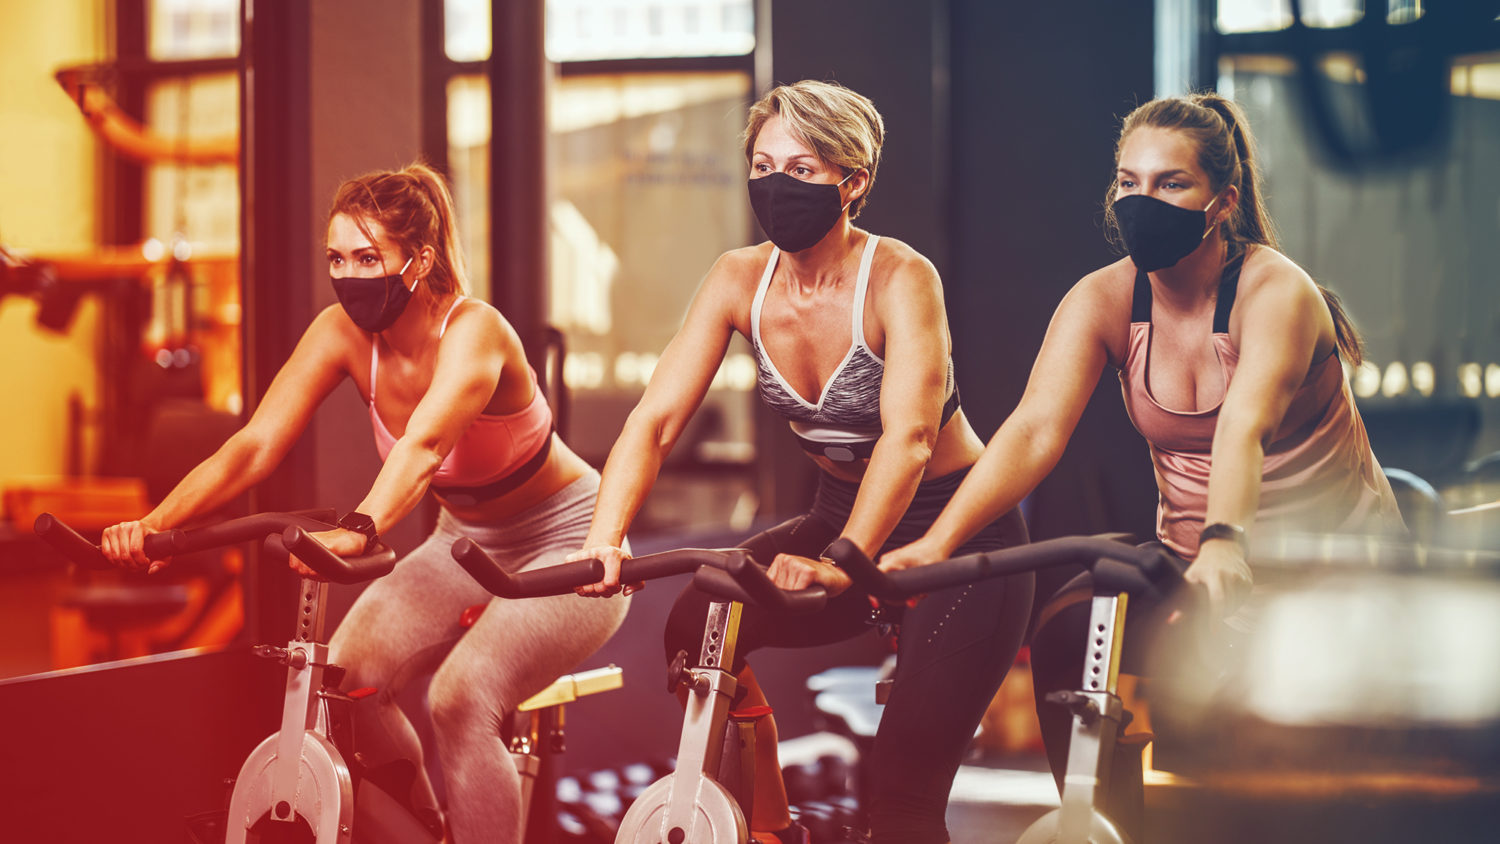 Spin Class Triggered a COVID-19 Outbreak